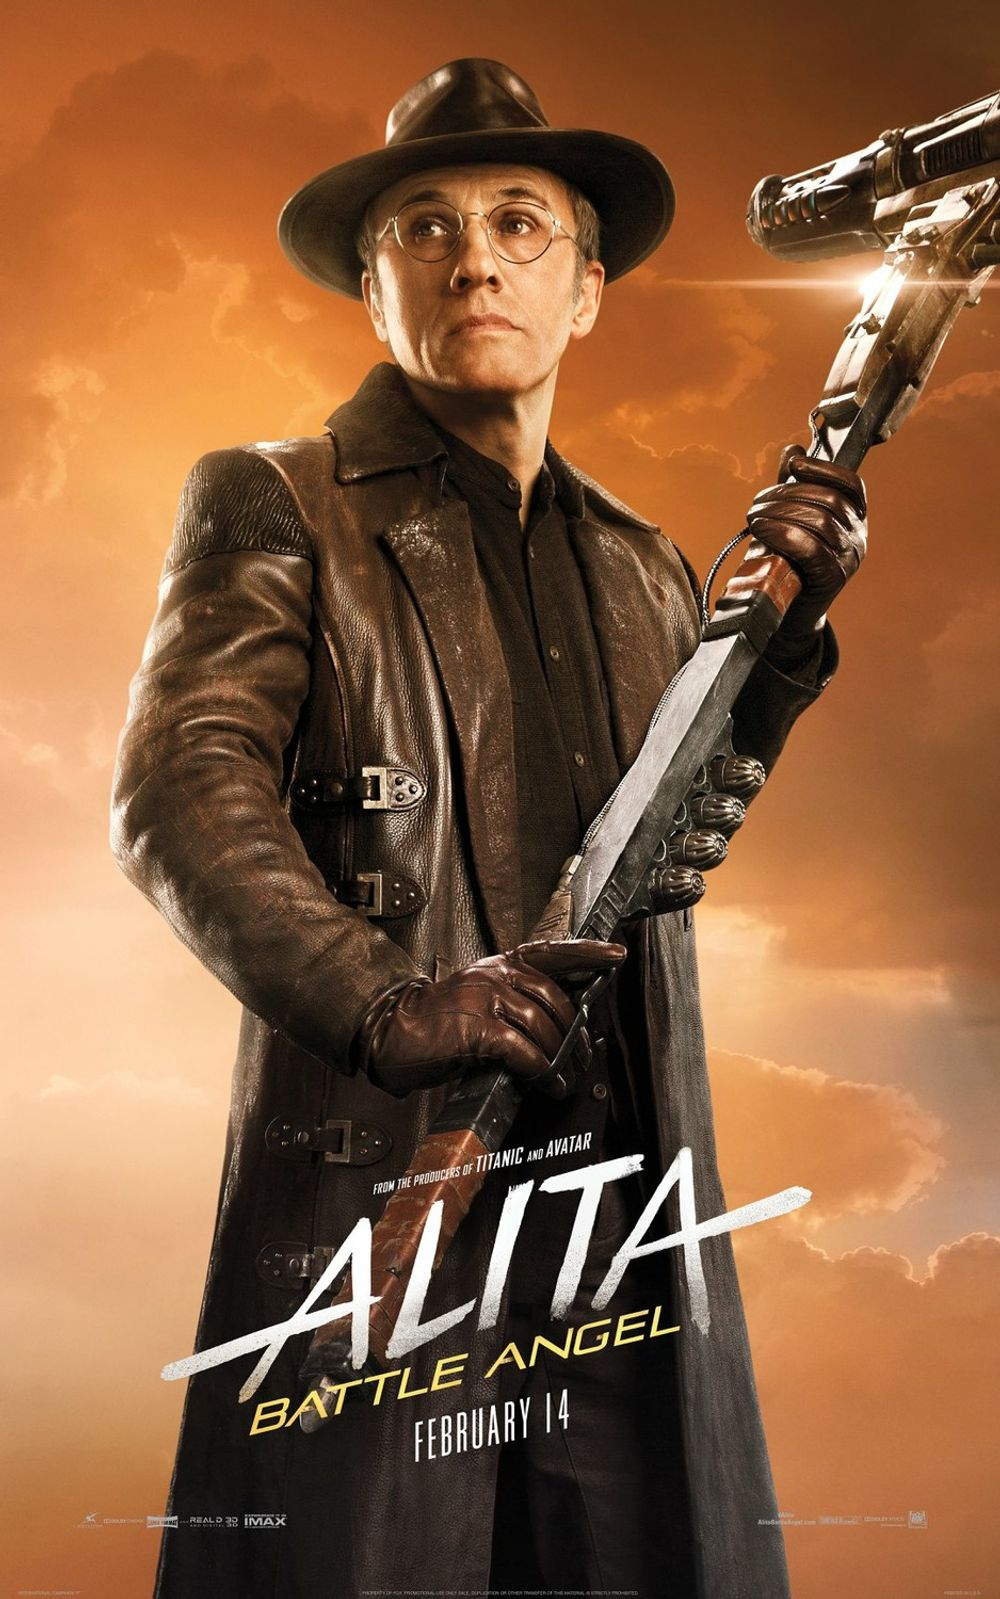 1-Alita: Battle Angel